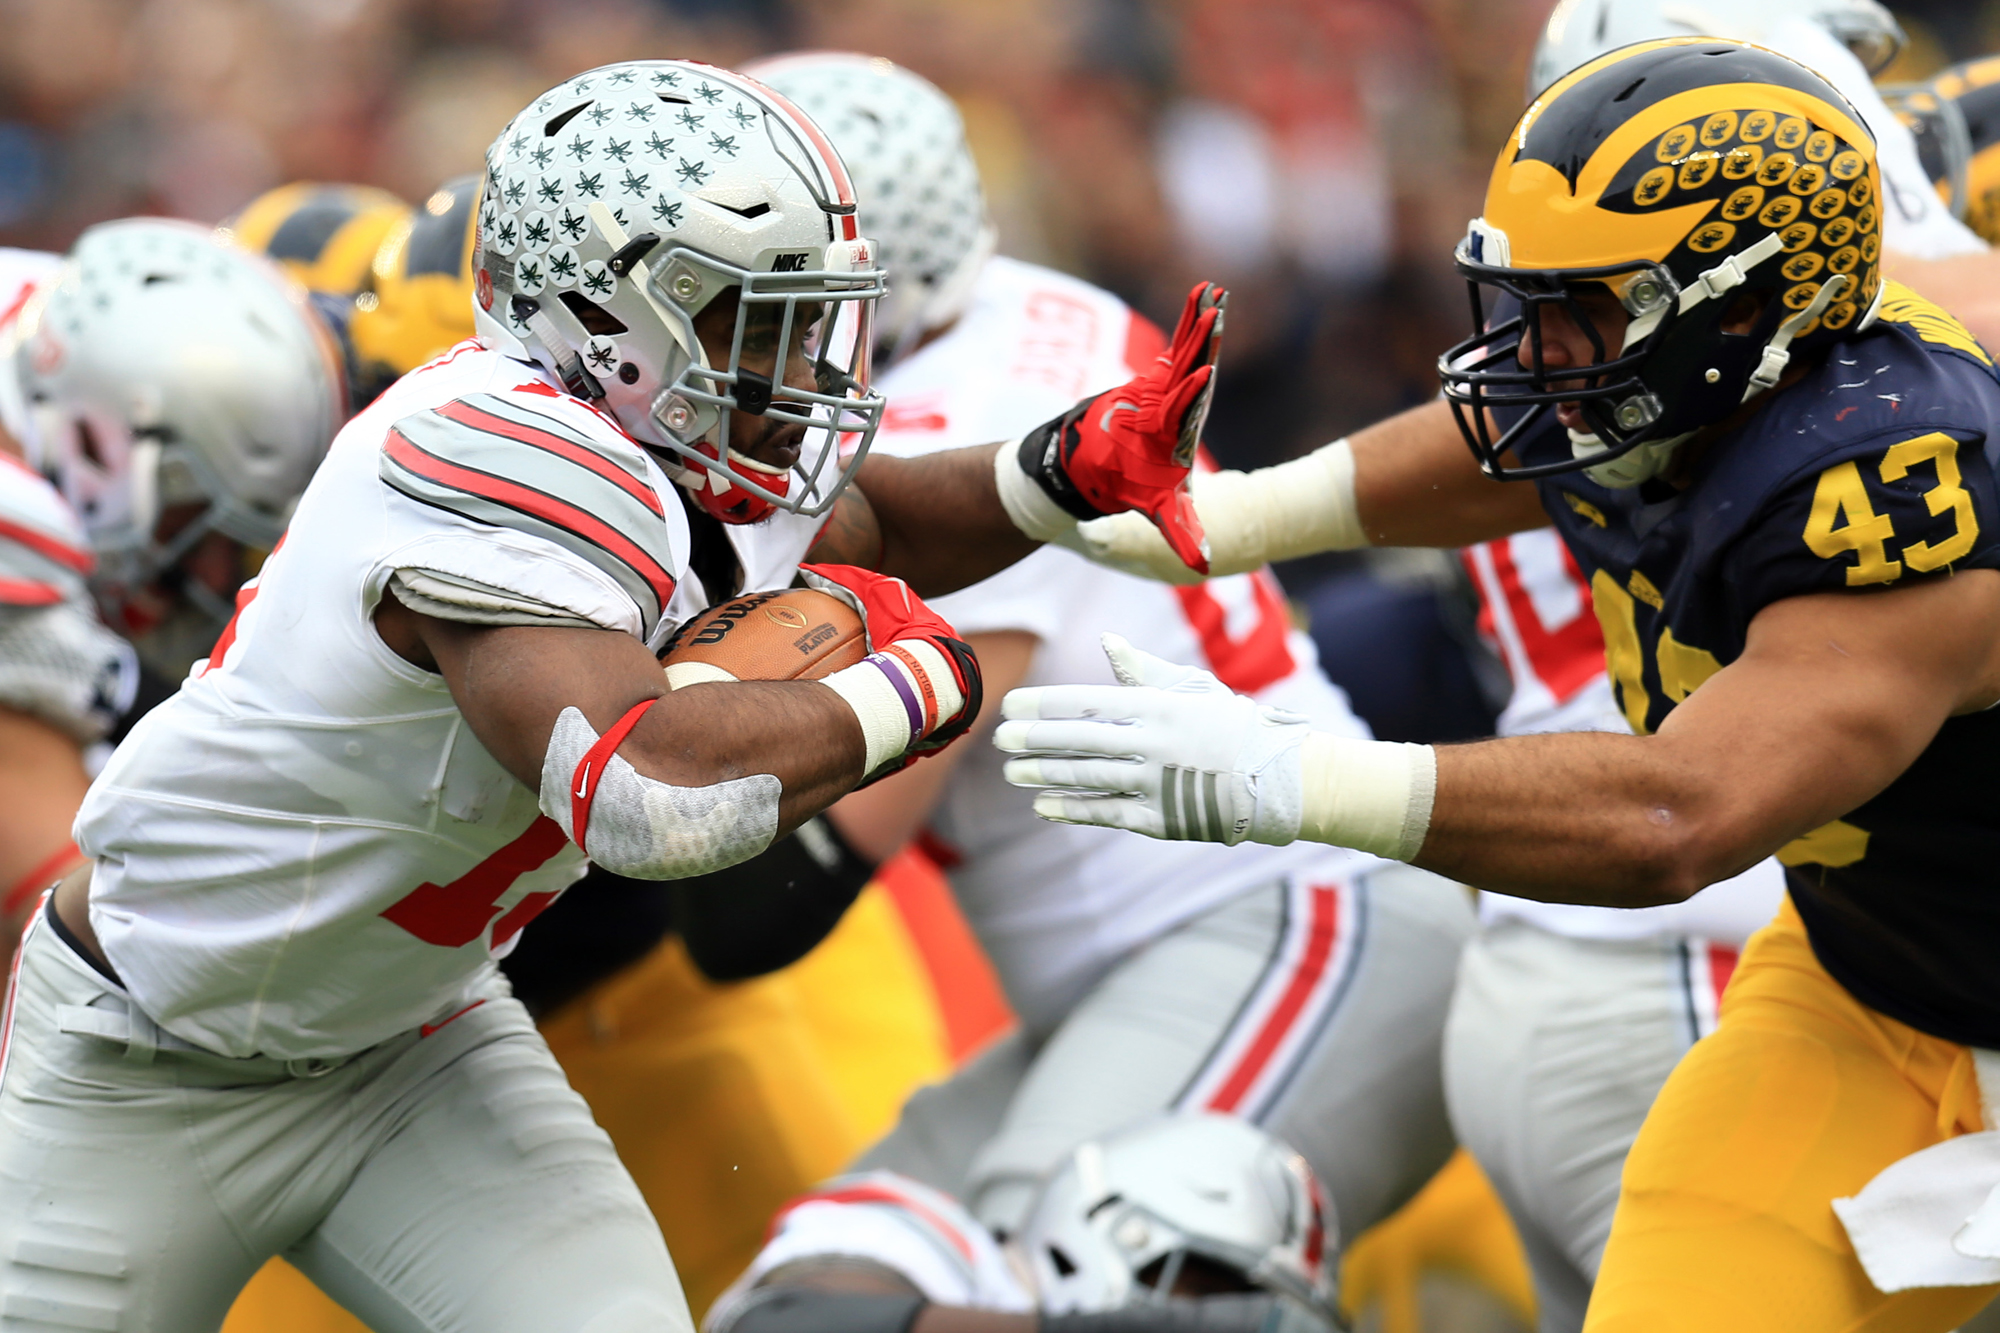 Running back Ezekiel Elliott #15 of the Ohio State Buckeyes runs the ball against the Michigan Wolverines at Michigan Stadium on November 28, 2015 in Ann Arbor, Michigan.